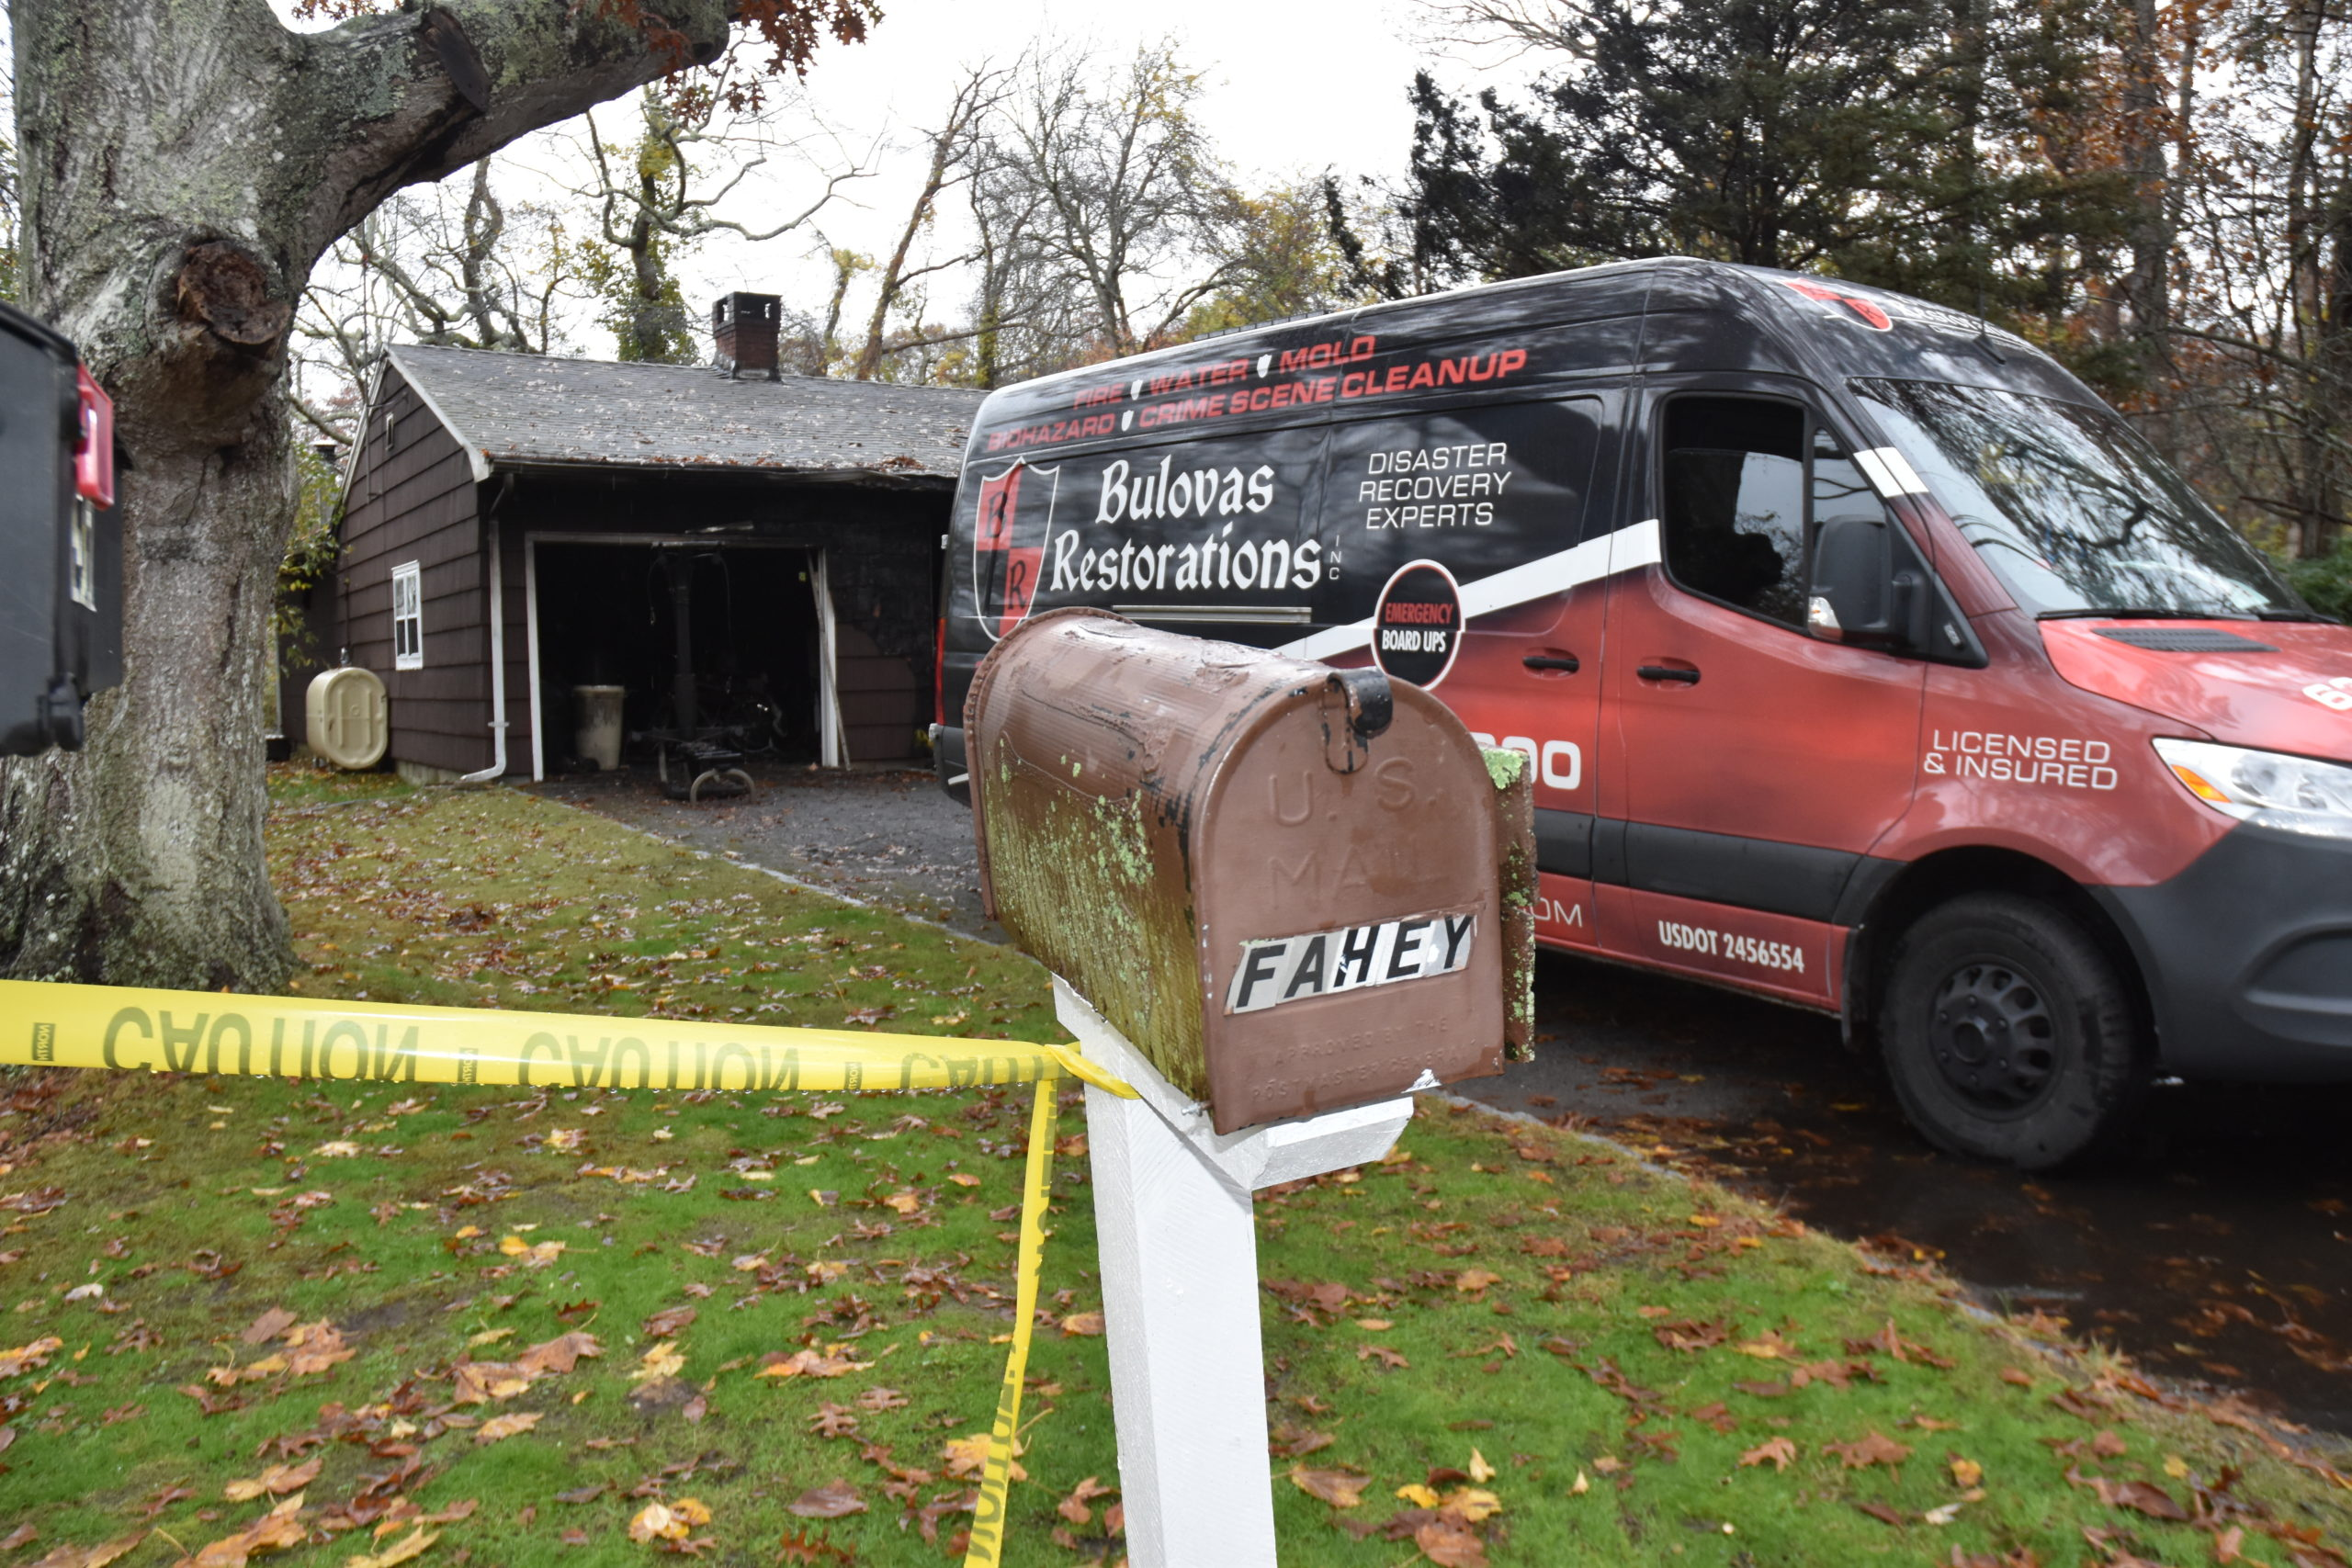 A fire restoration service was at the scene Friday of a fatal fire on Peconic Bay Avenue in North Sea that killed John Fahey.